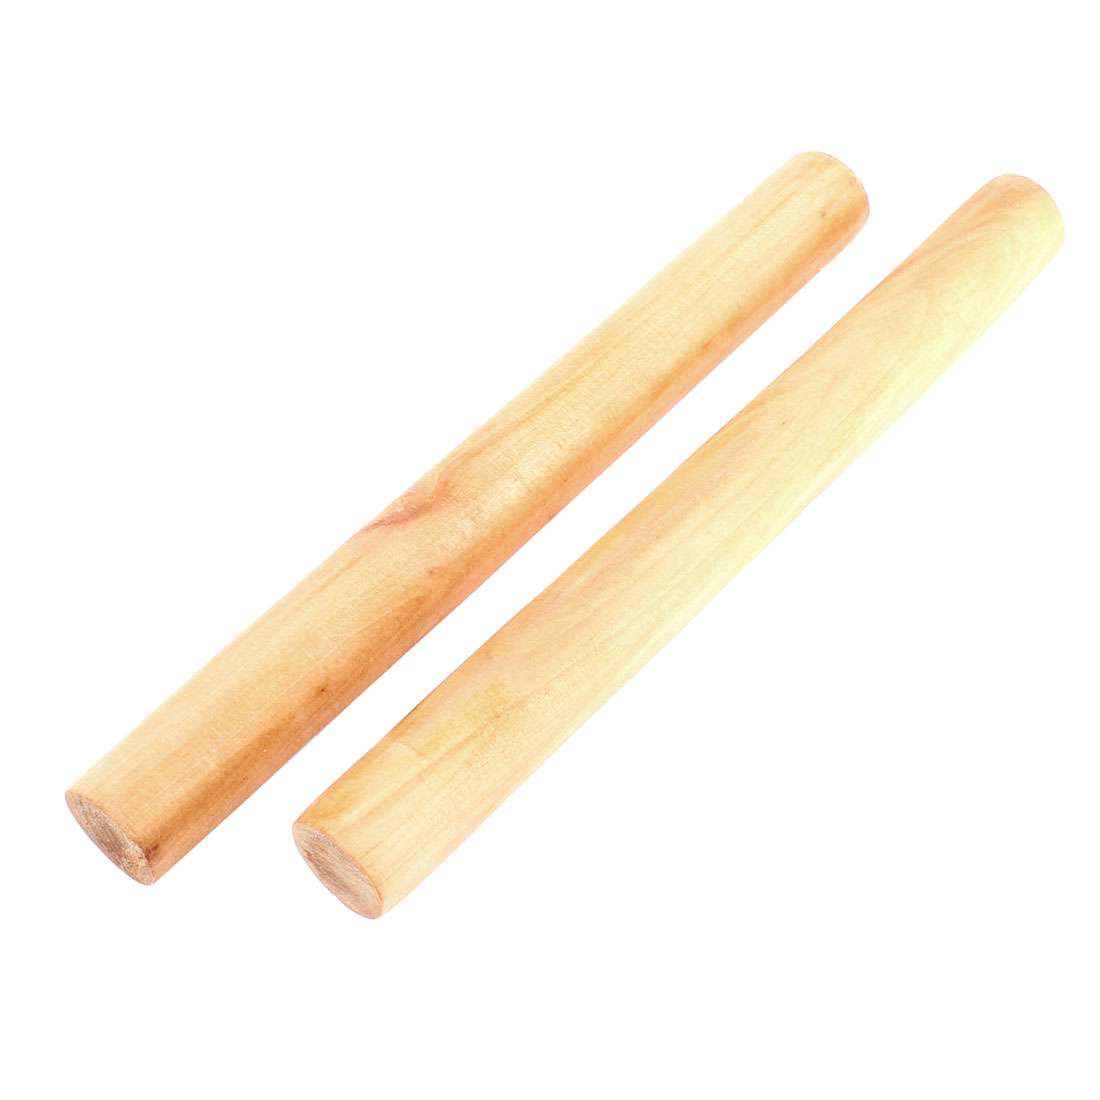 Wooden Stick Flour Bread Kitchen Accessory Rolling Pin Holder 10 Inch 2 Pcs